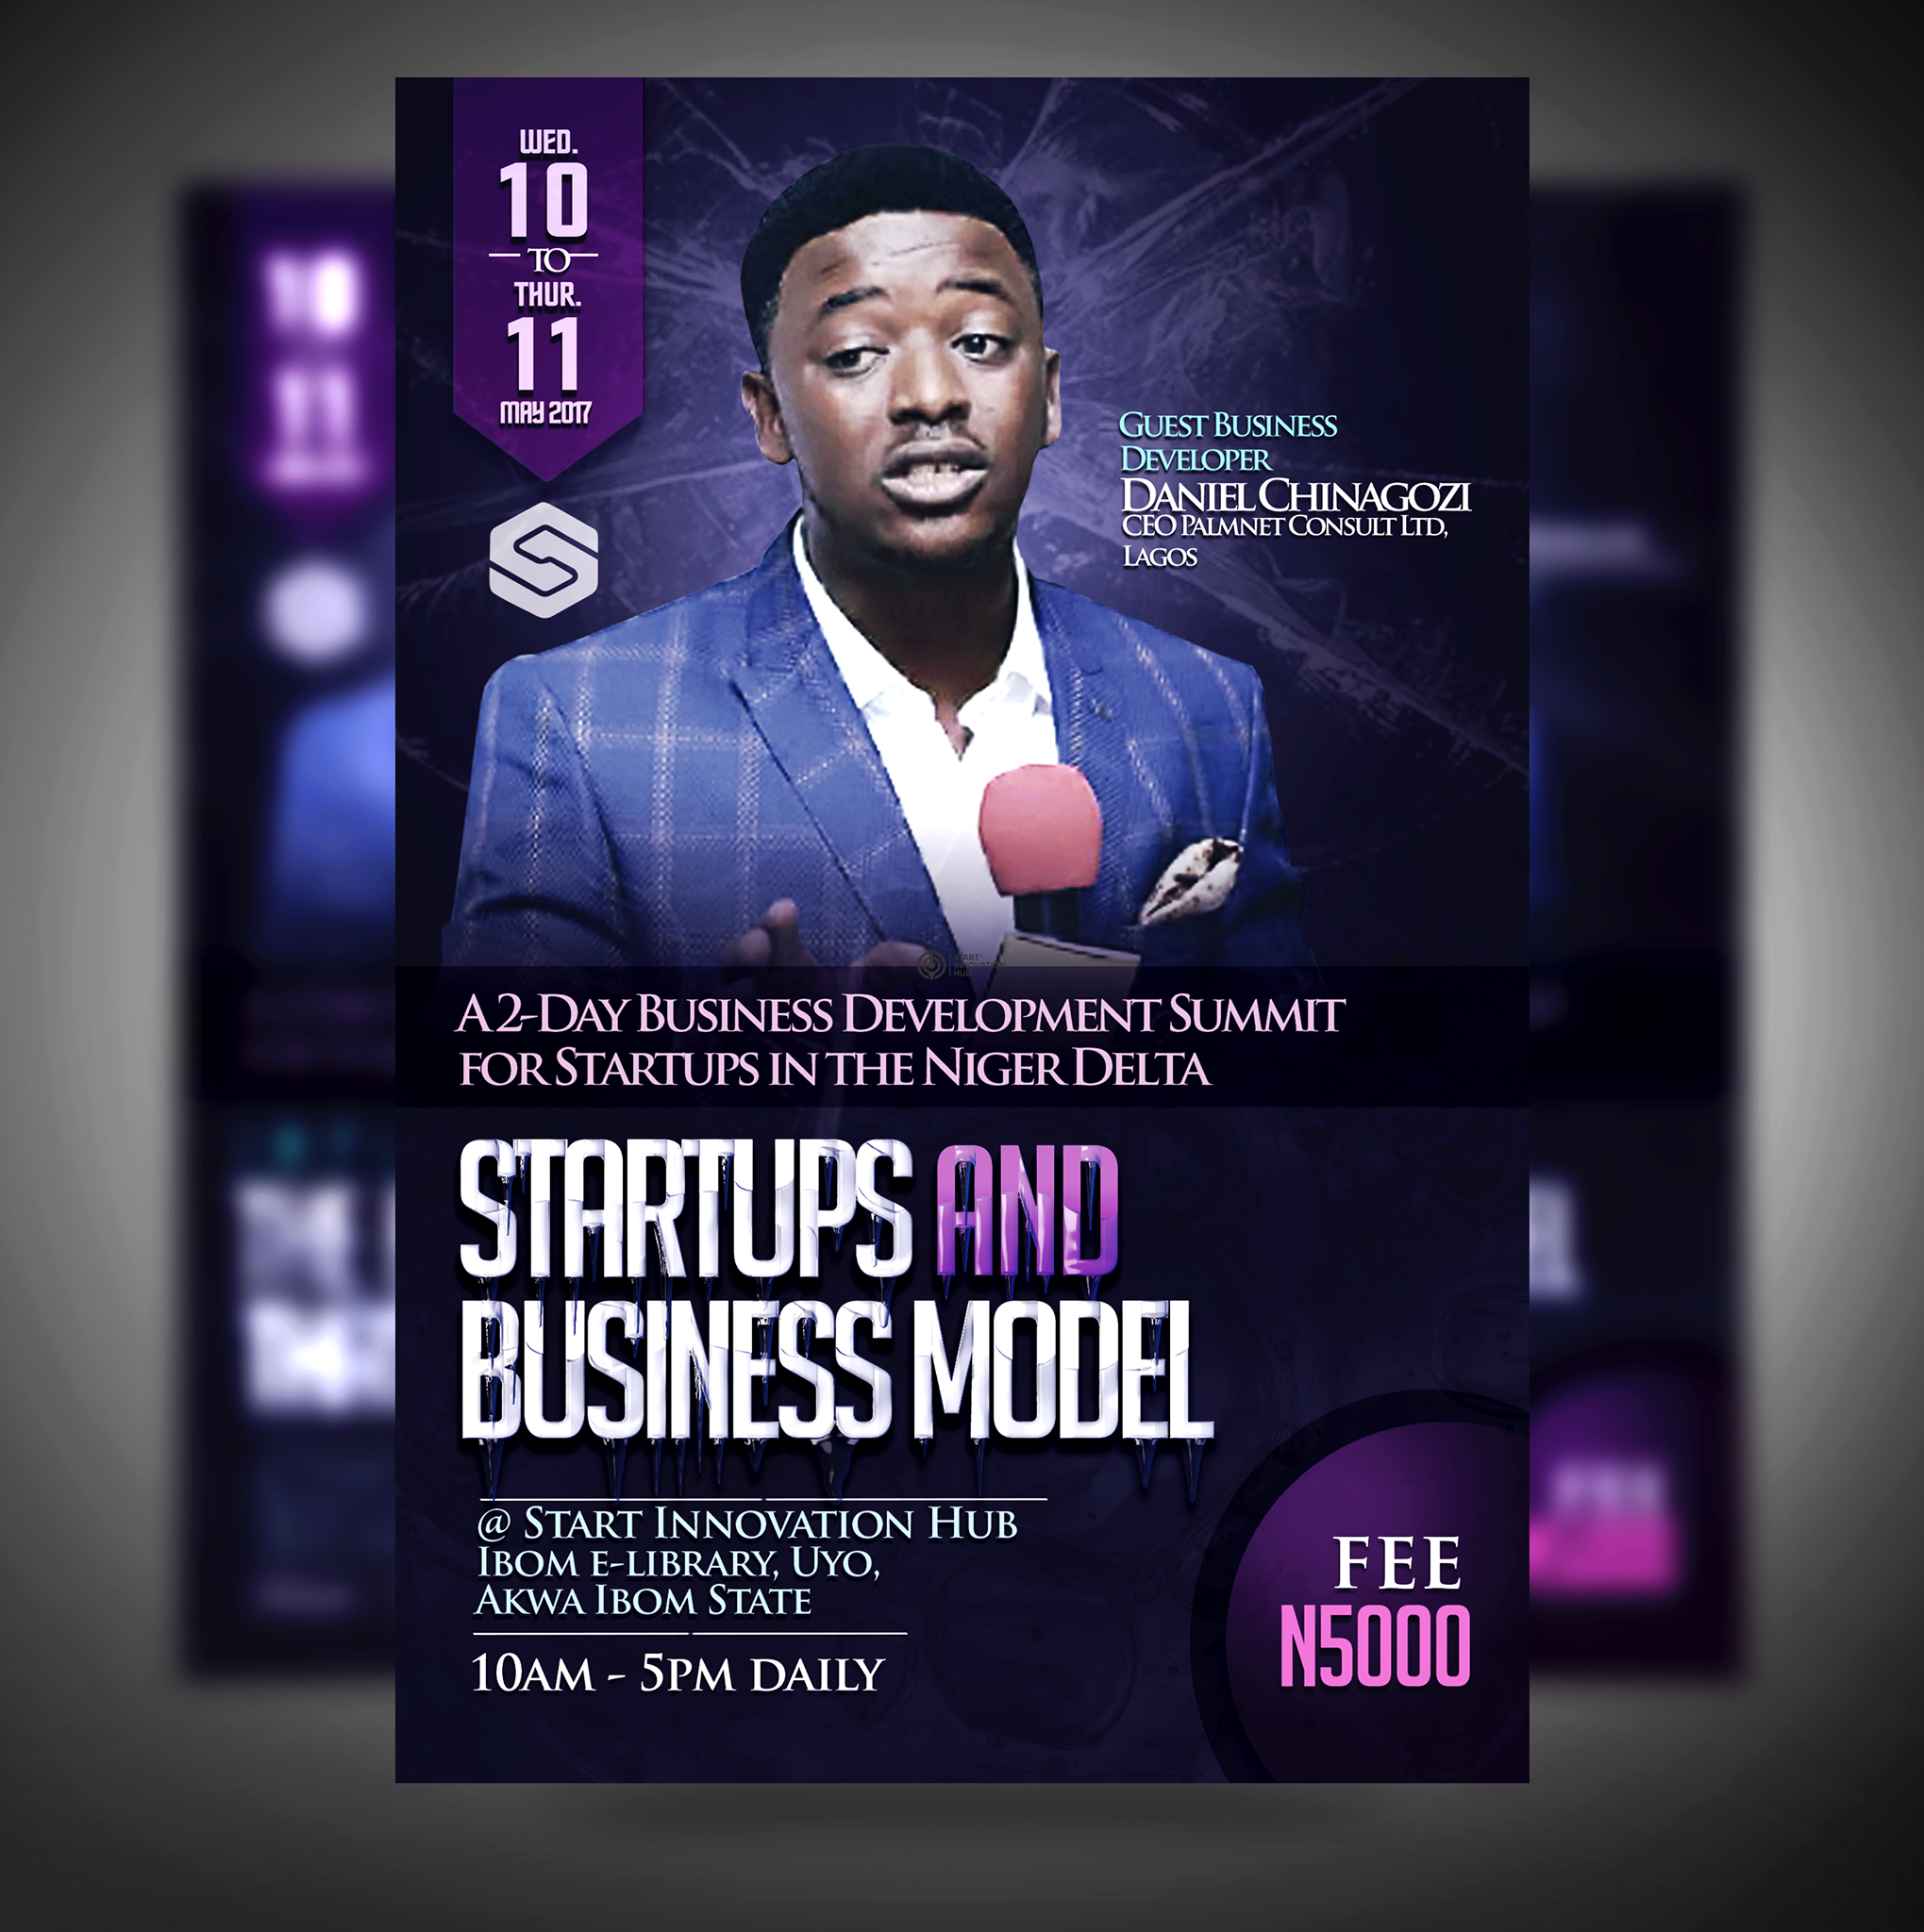 Event: Startups and Business Model with Daniel Chinagozi